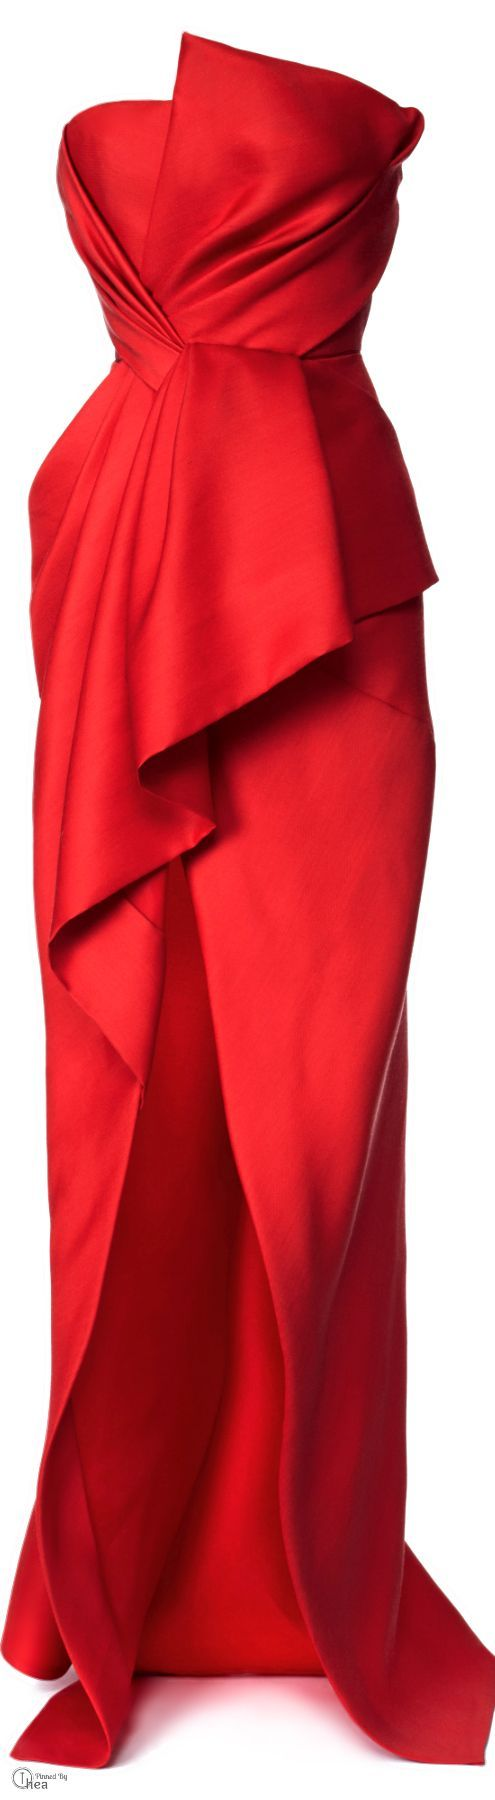 J. Mendel ● Resort 2014 This is the red version of Chanel Iman's striped dress below.